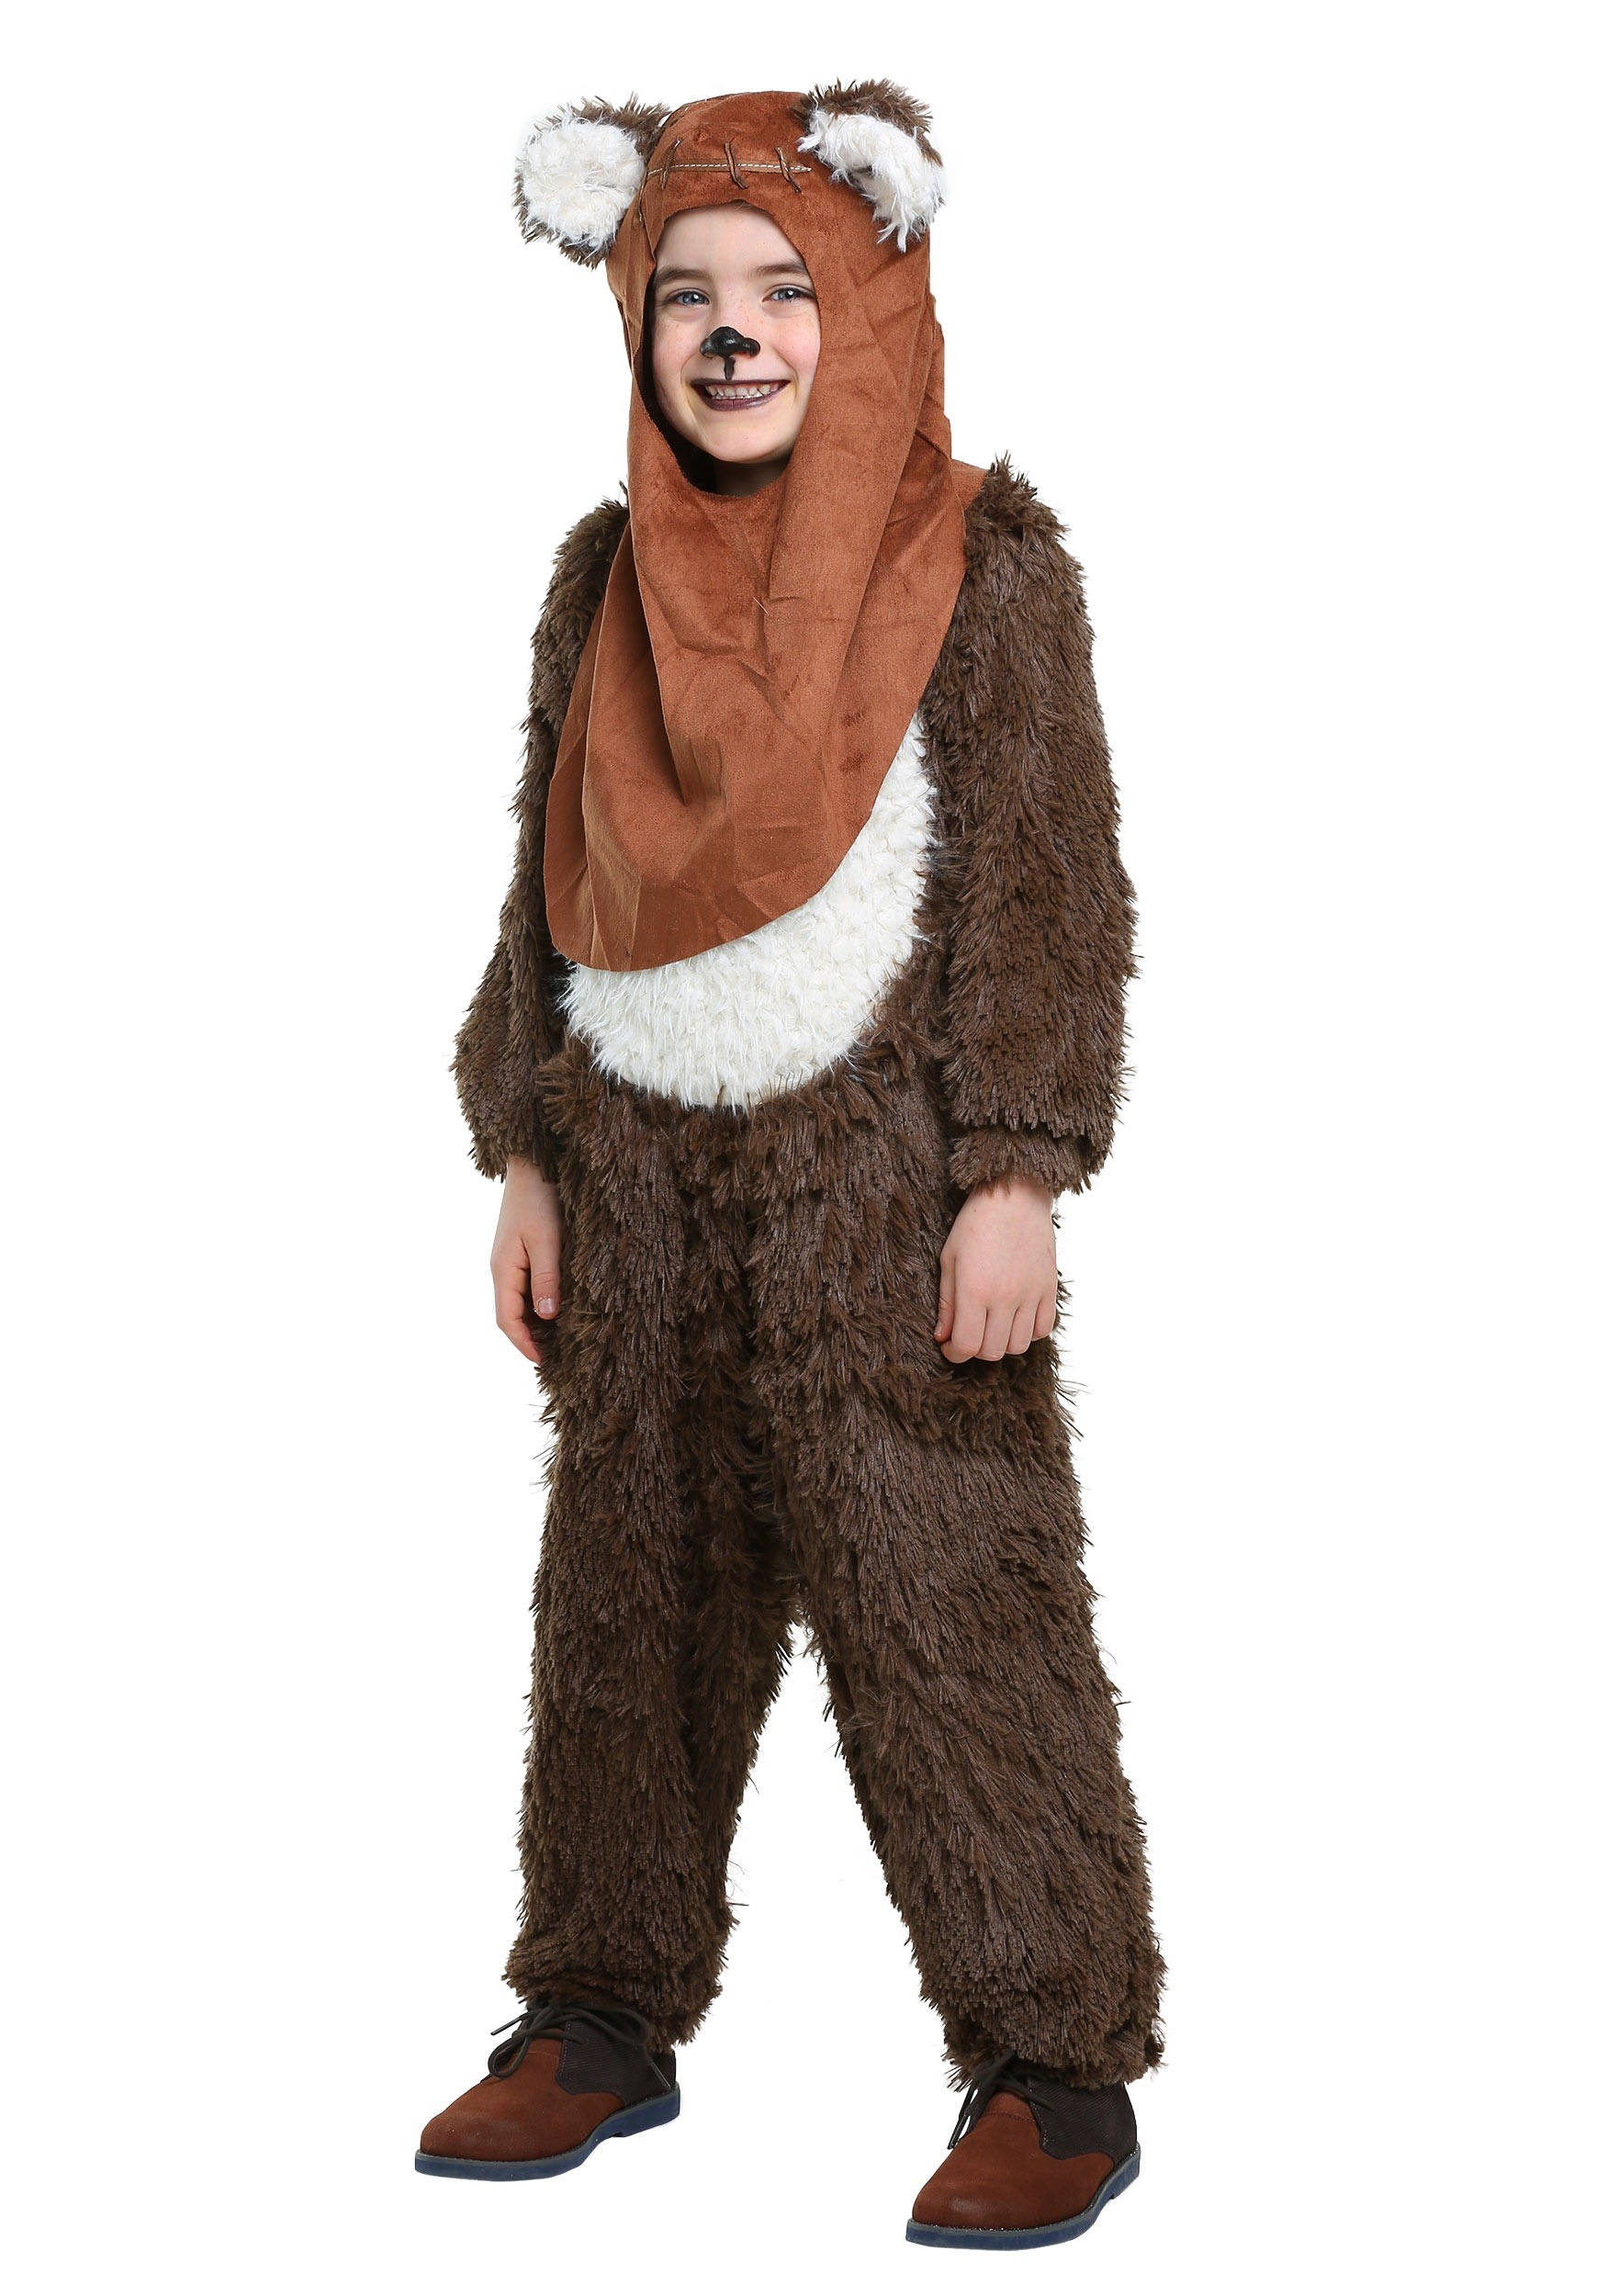 169215f09 Child Deluxe Wicket/Ewok Costume - image 1 of 4 zoomed image